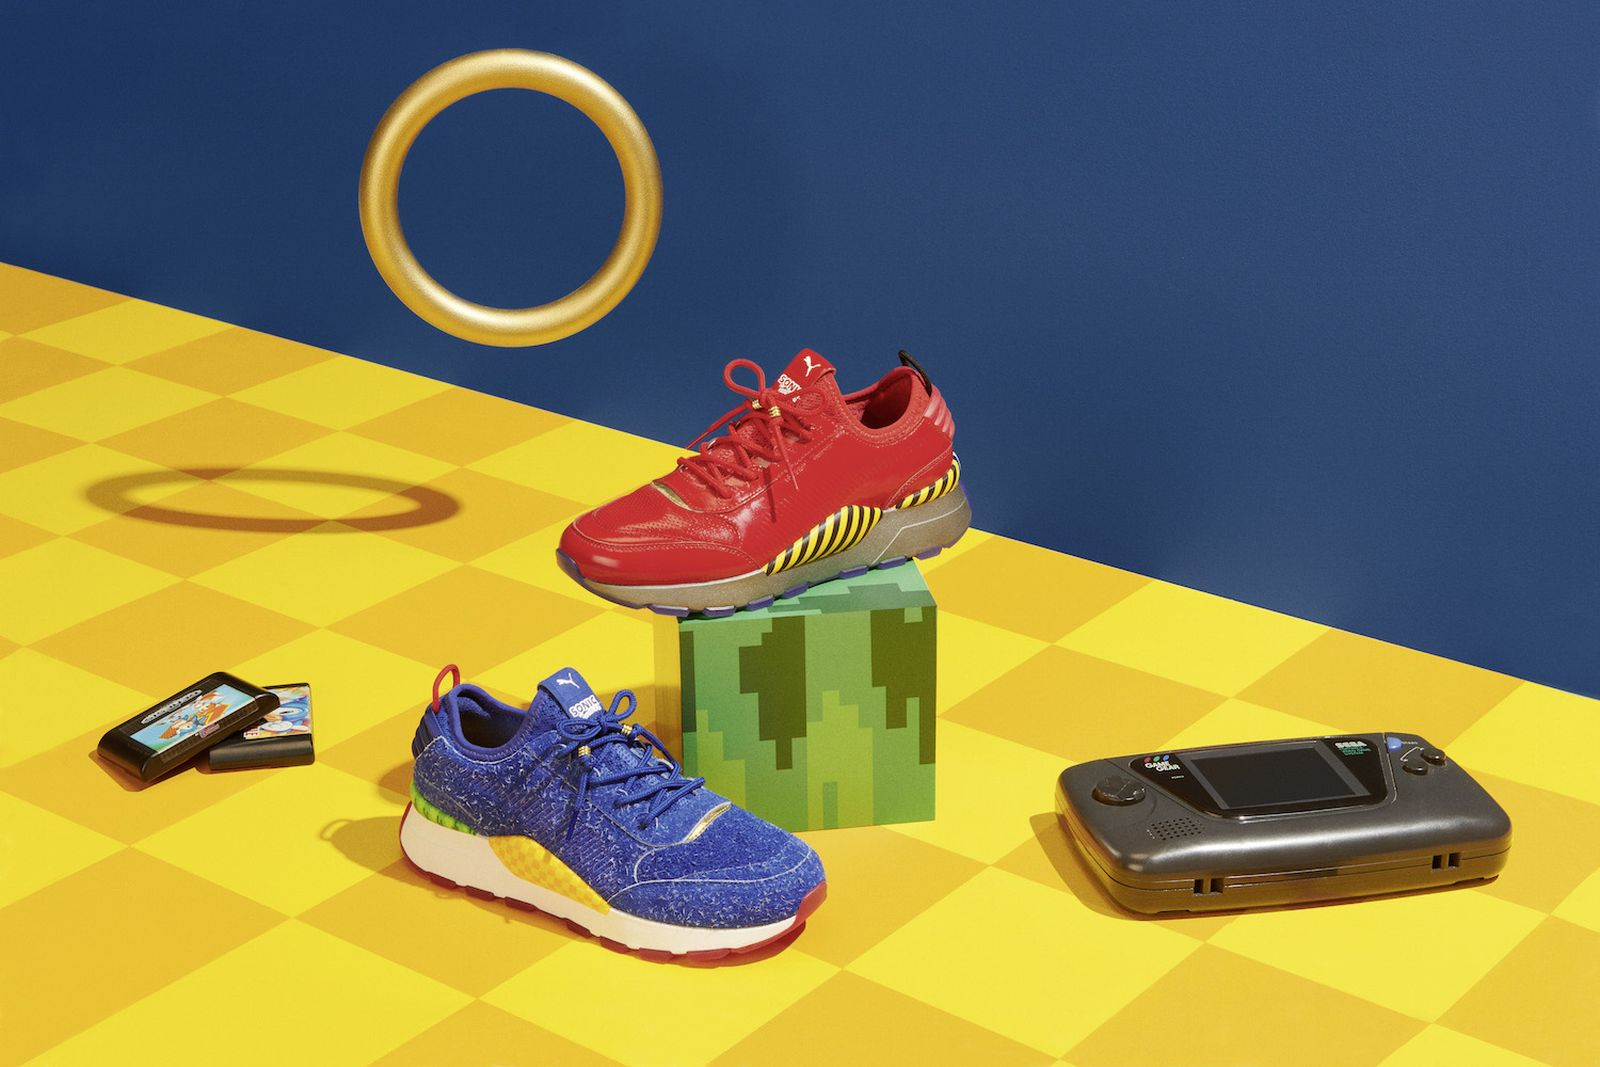 puma-sega-rs-0-sonic-and-dr-eggman-release-date-price-01